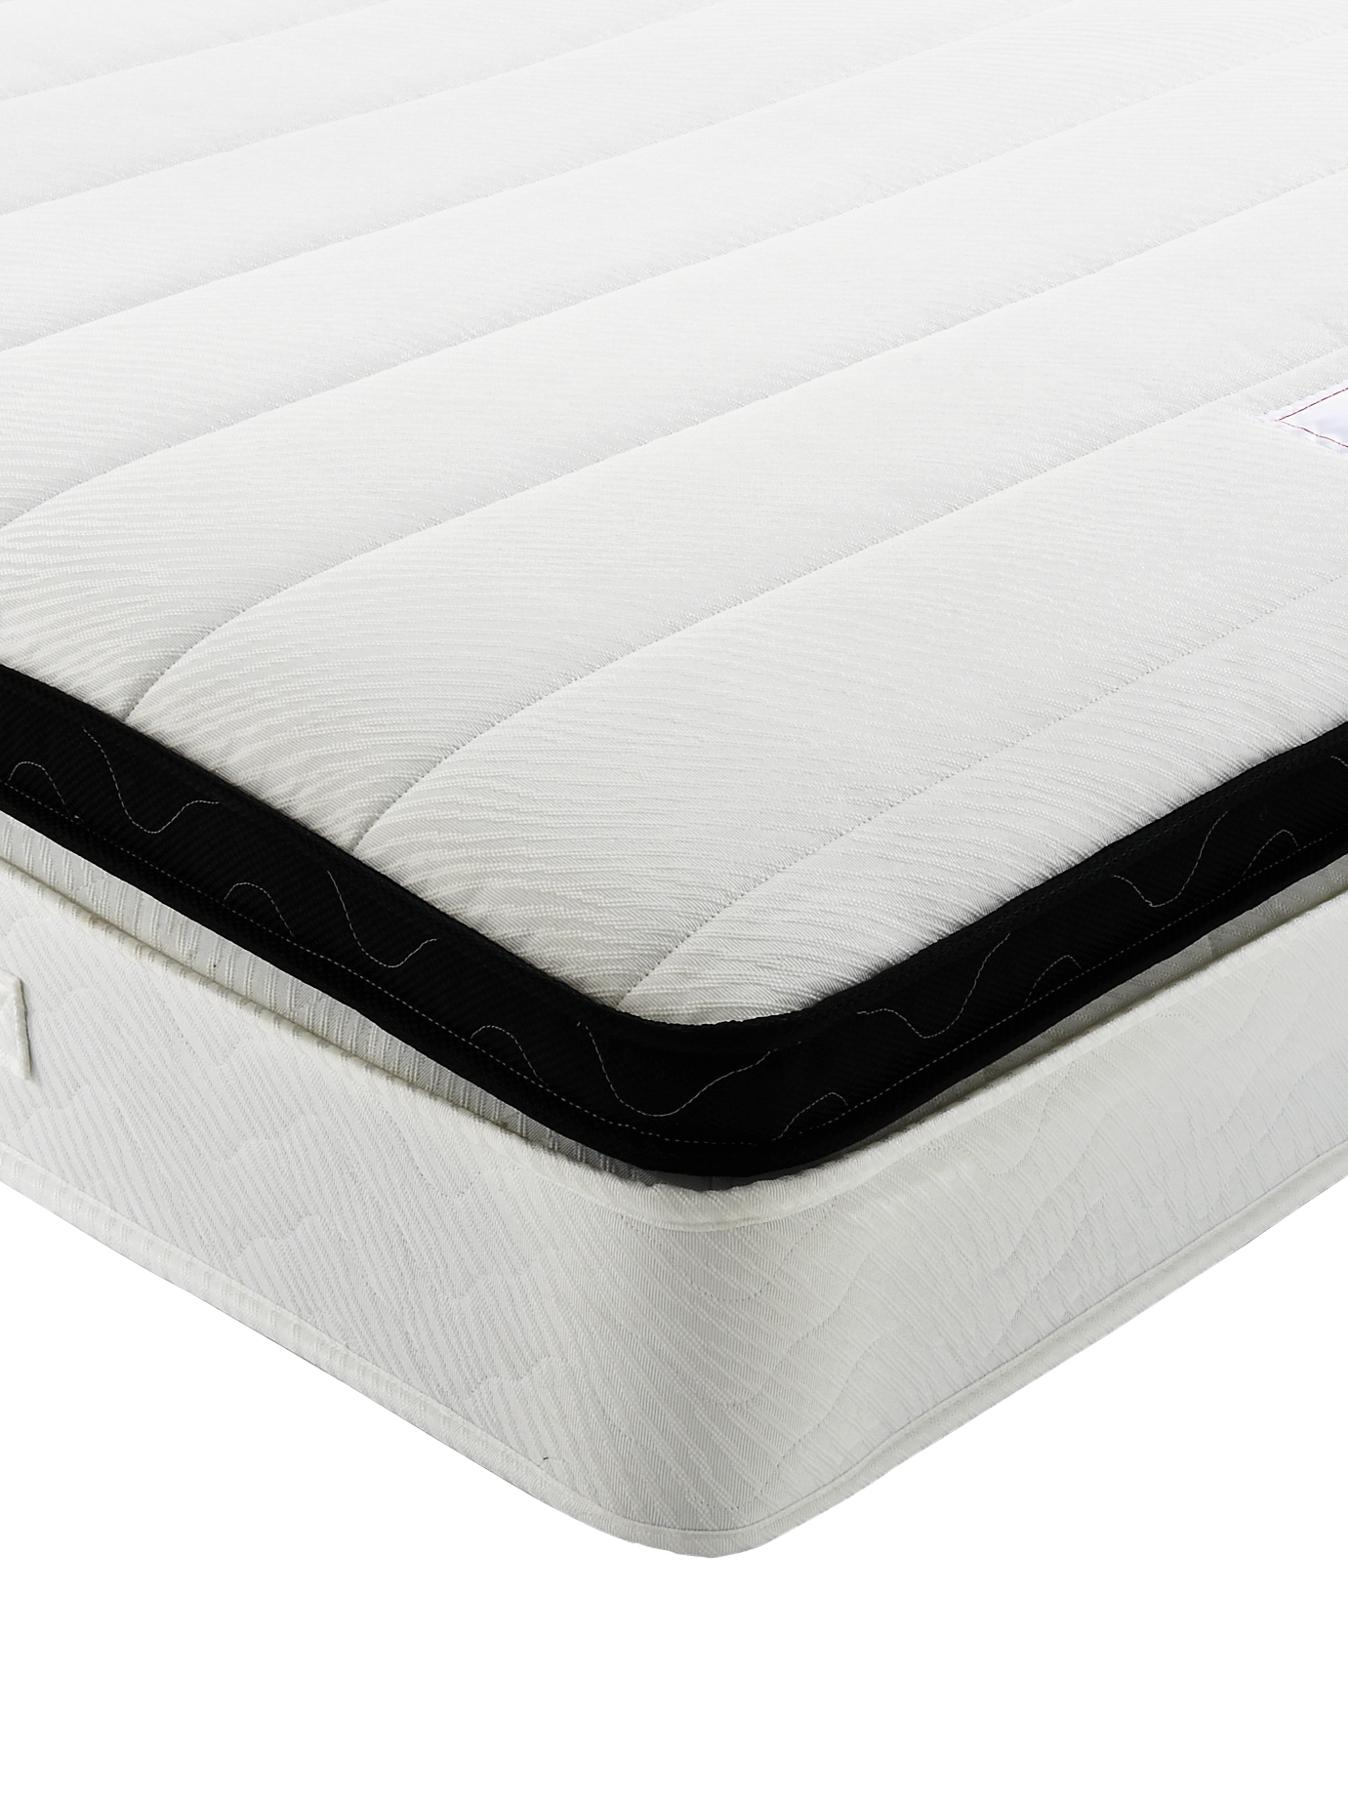 Wincham Deep Comfort Box Top Mattress - Medium, Beige,Black